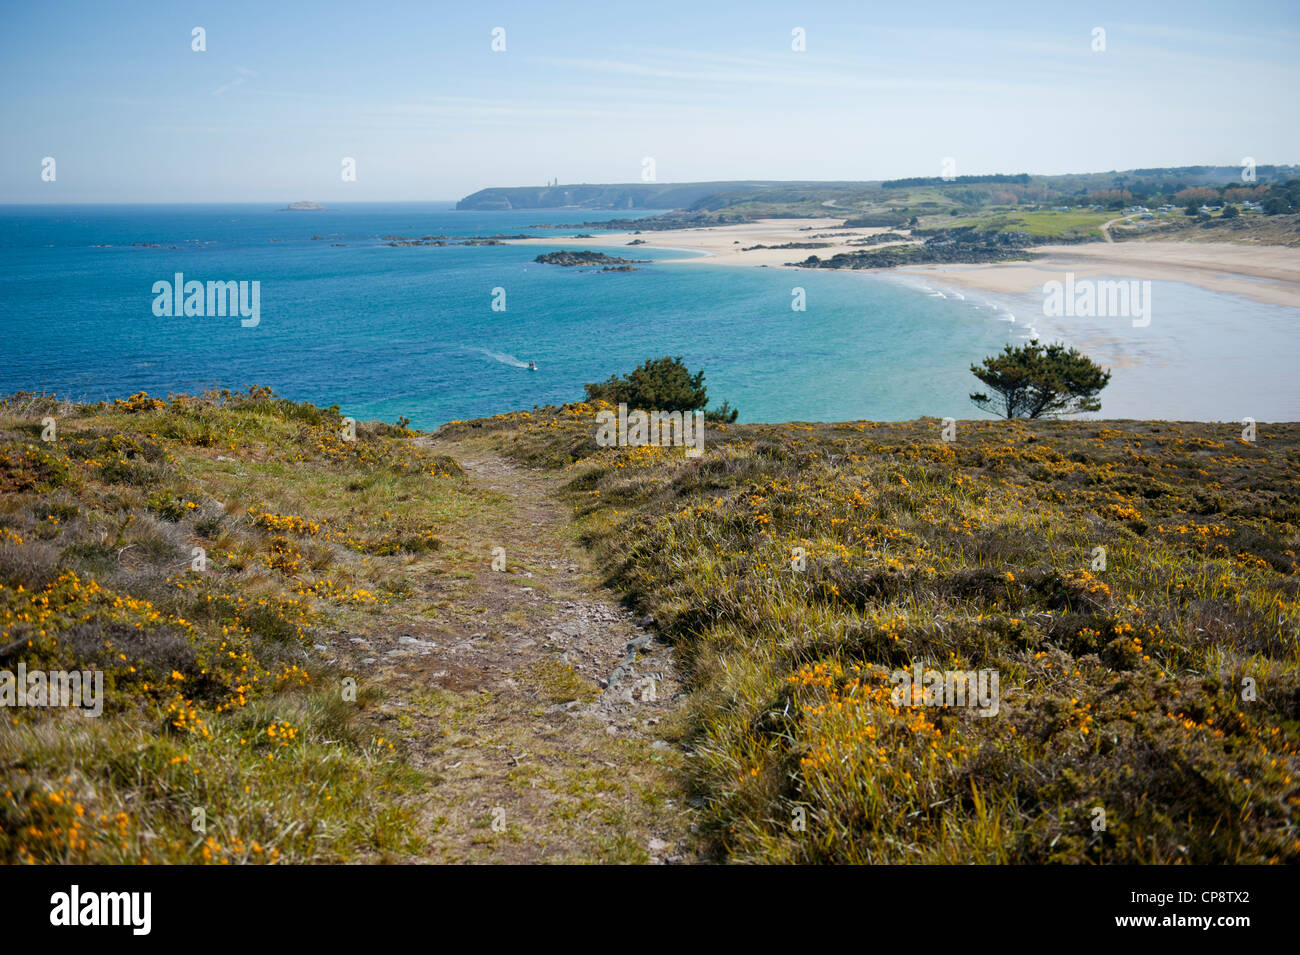 View of the Plage de l'Anse du Croc near Cap Fréhel on the north coast of Brittany, France - Stock Image